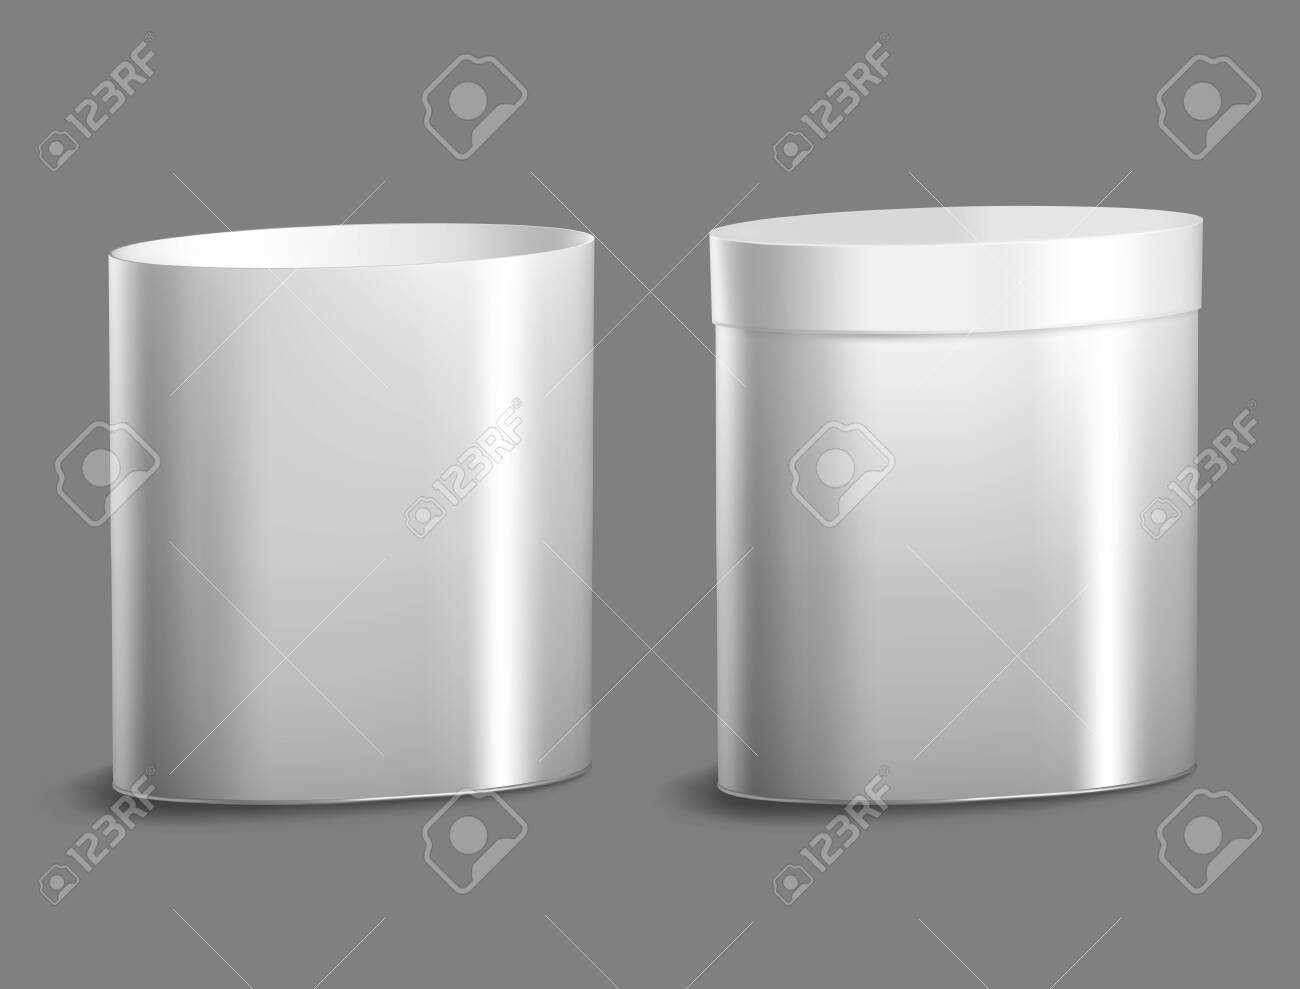 Oval metal can for food, cookies and gifts. - 145205562